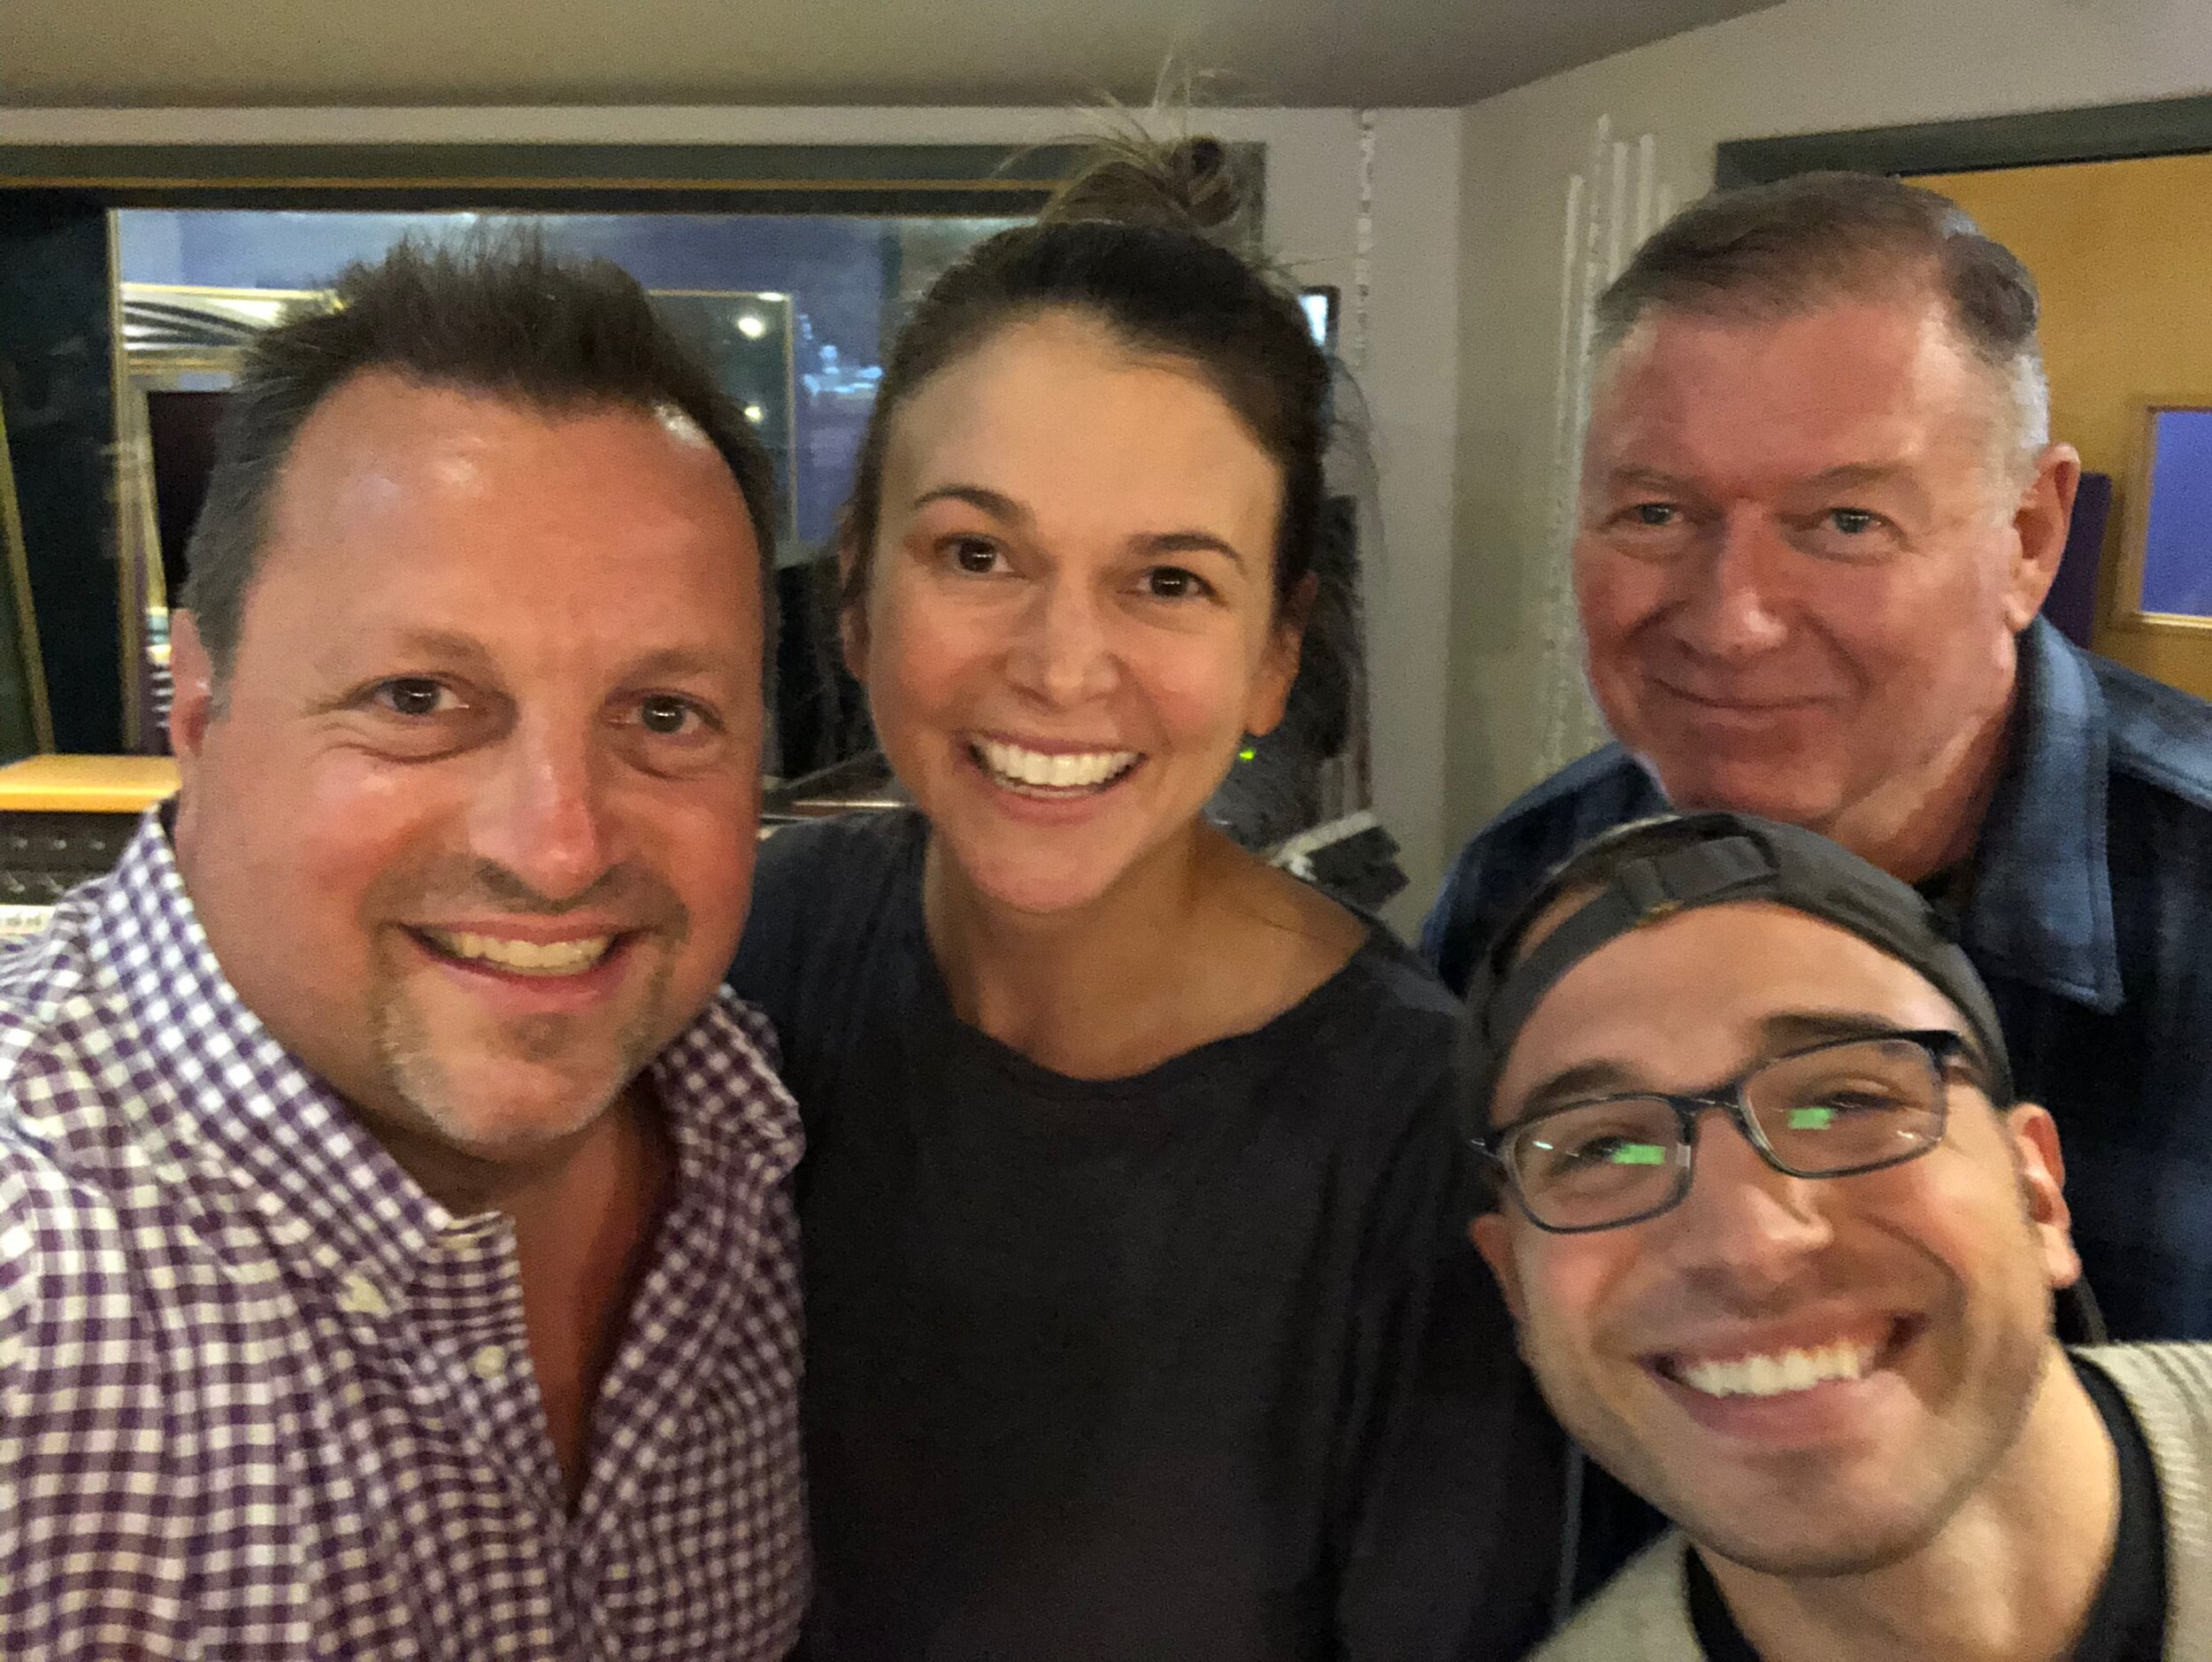 with Sutton Foster who sings on  Send in the Clowns/Somewhere  with Music Supervisor Michael Rafter and duet vocal arranger Santino DeAngelo